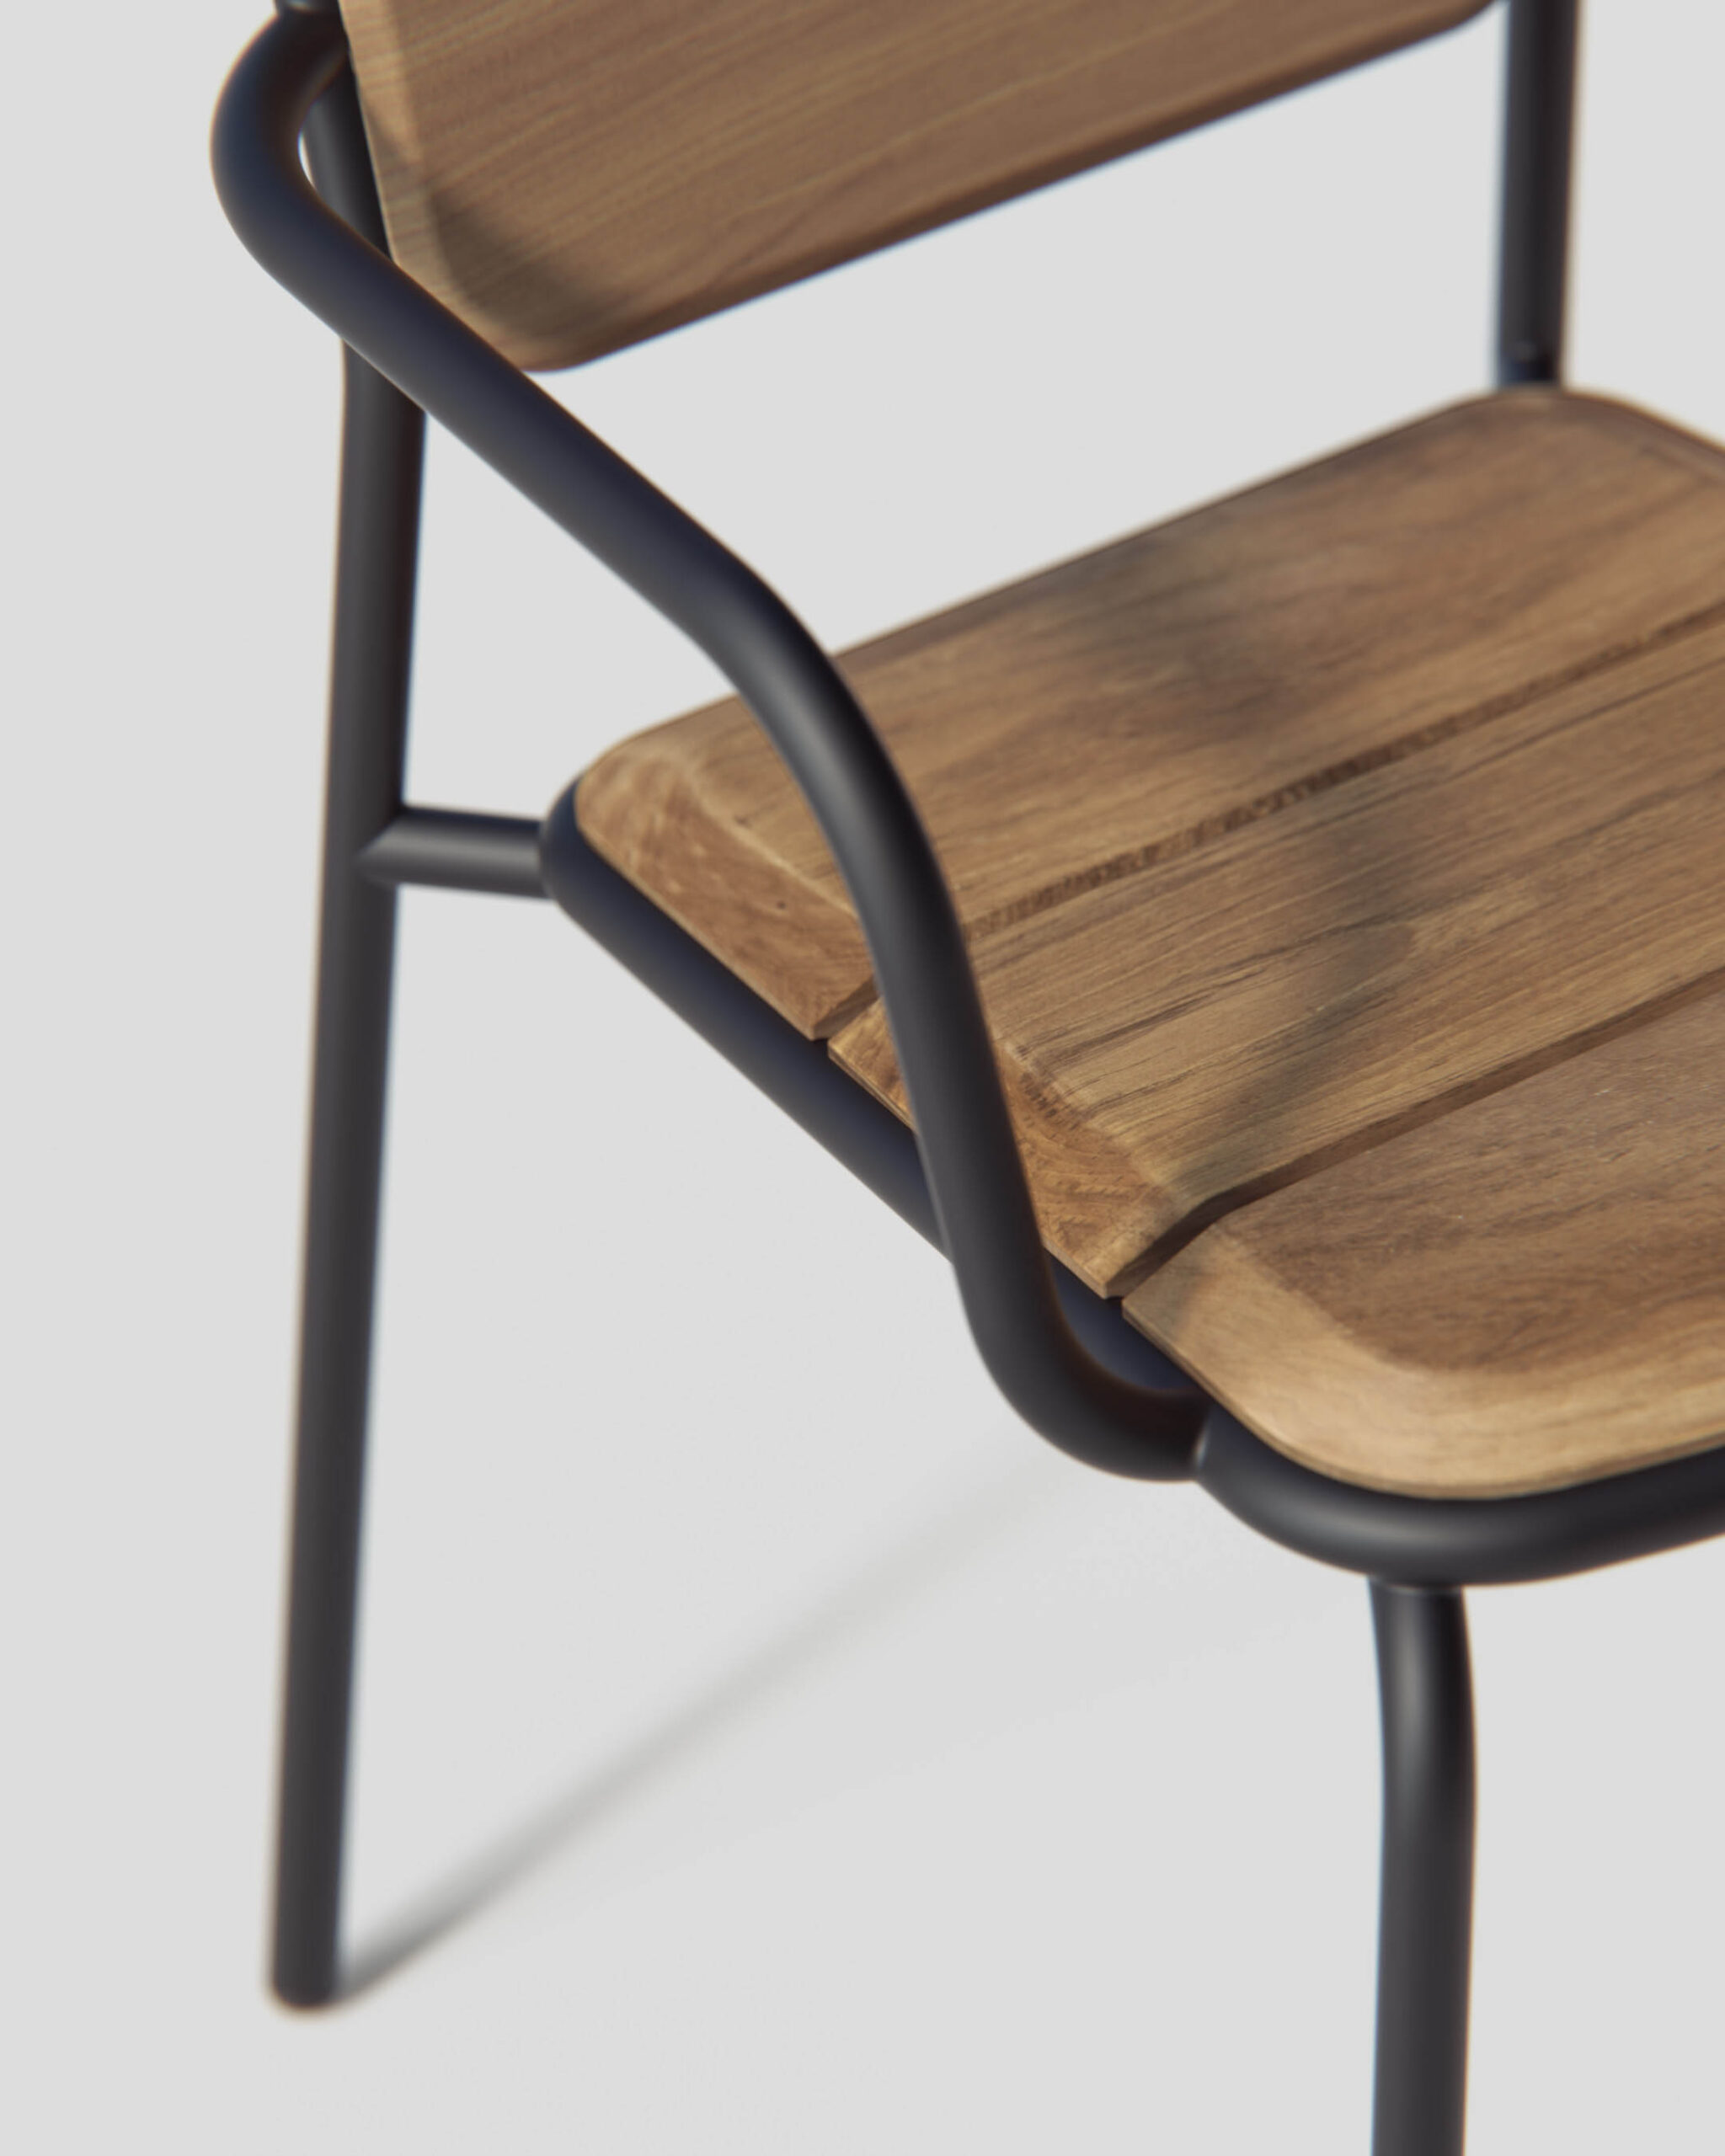 Andreas Bhend Industrial Design Studio TEAK Chair 03